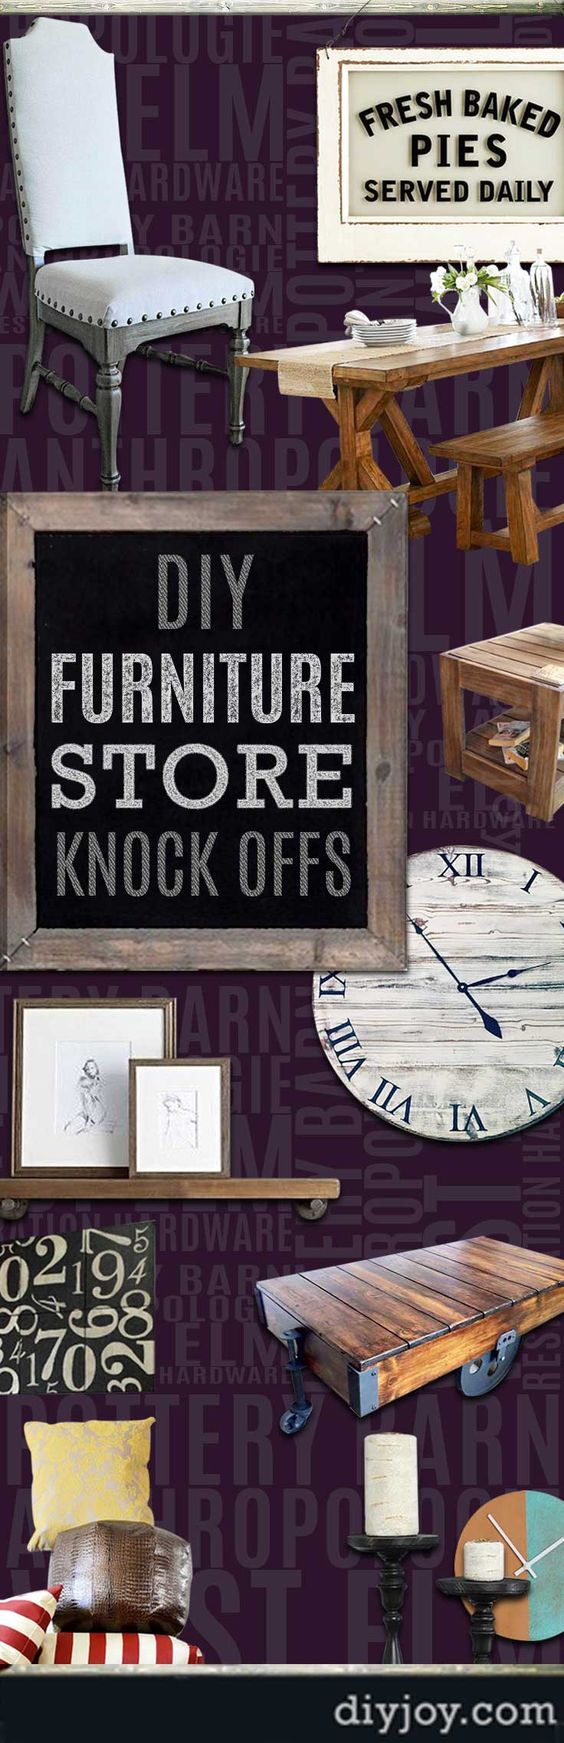 DIY Furniture Ideas and Projects - Do It Yourself Designer Store KnockOffs - DYI Furniture Projects Inspired by Pottery Barn, Restoration Hardware, West Elm. Tutorials and Step by Step Instructions  |   Pottery Barn Knock Off Candle Holders and Candles  |   http://diyjoy.com/diy-furniture-store-knockoffs